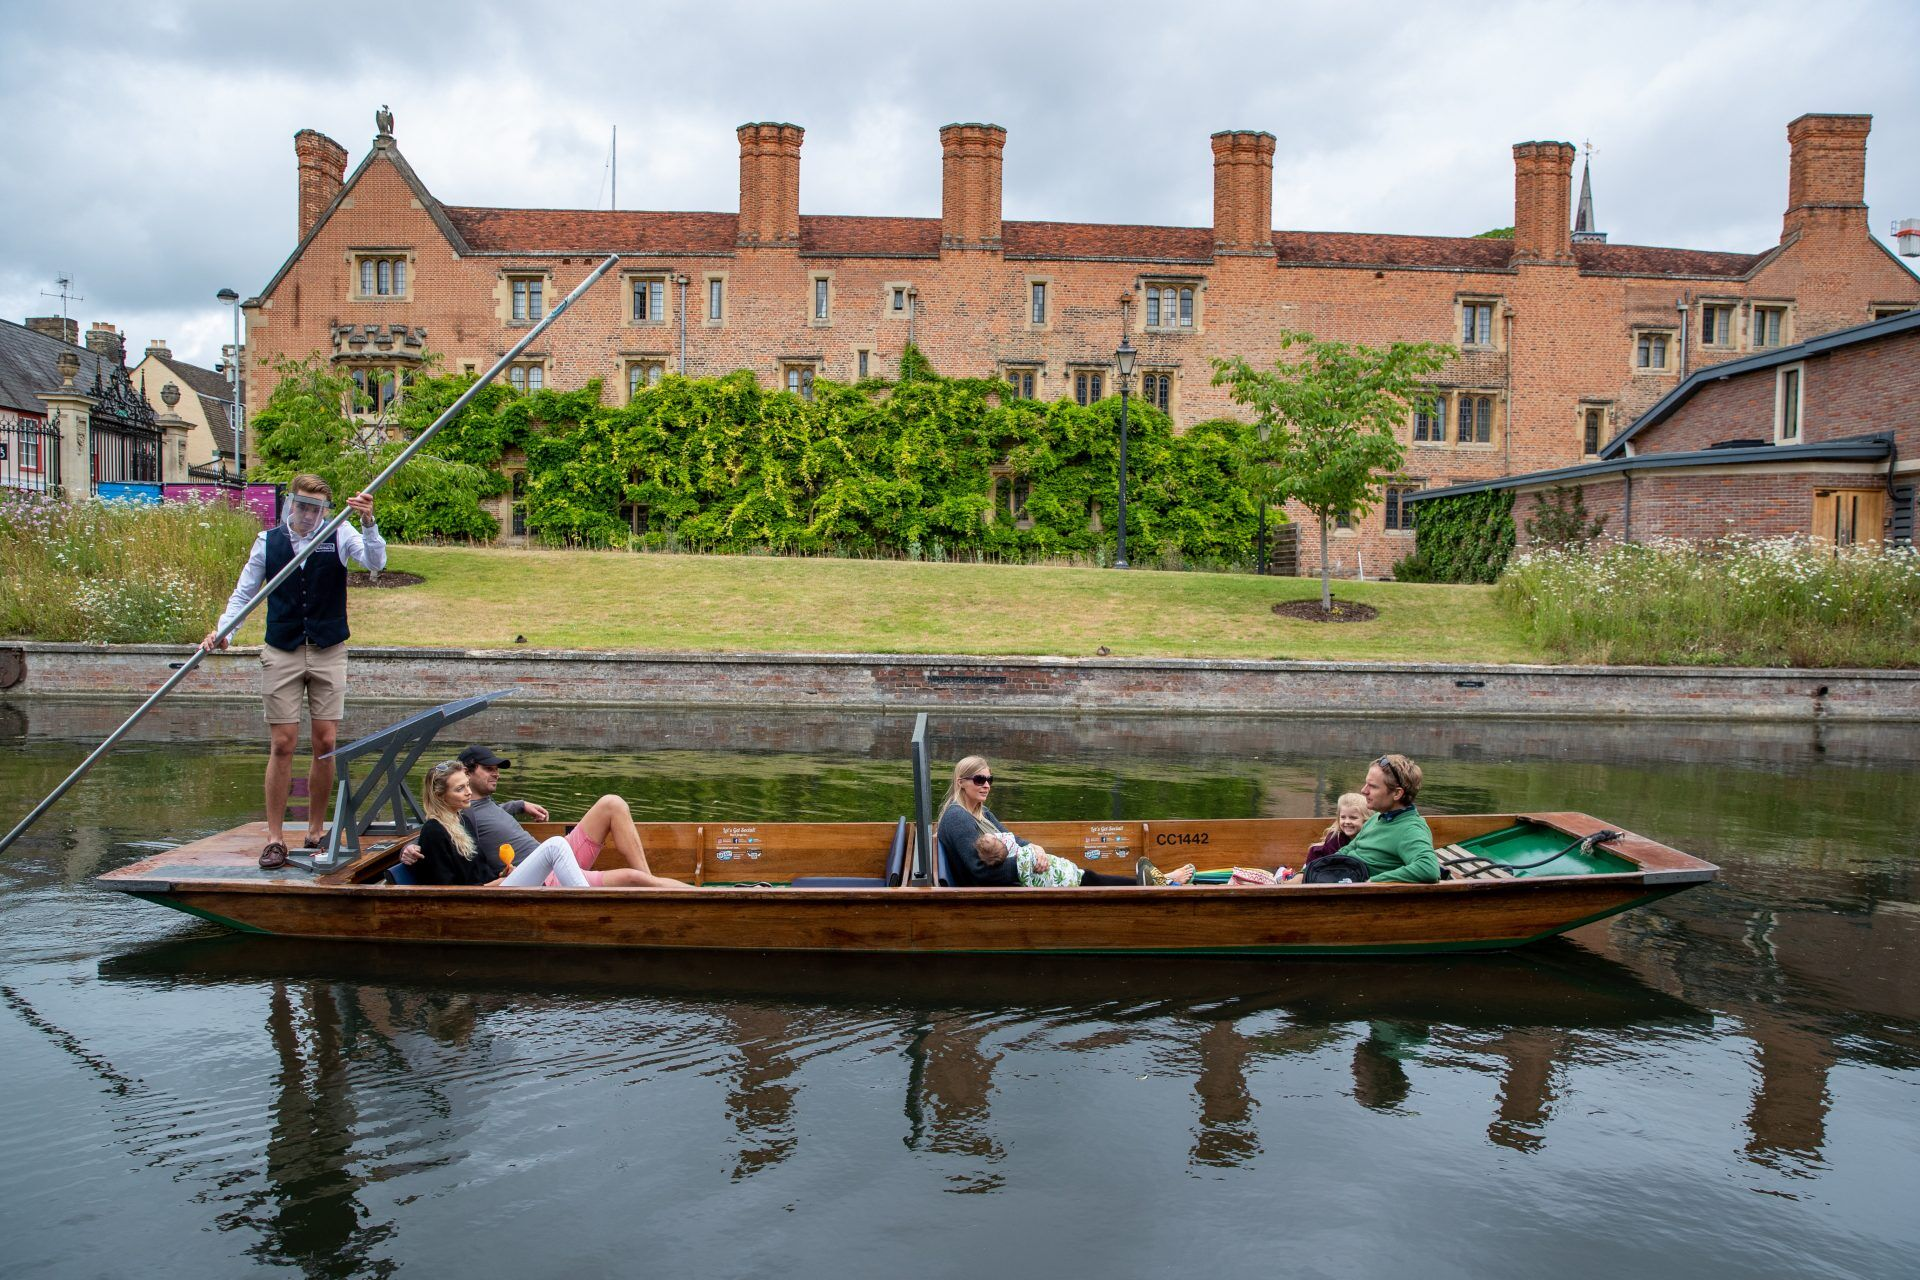 COVID-19, Punting Cambridge COVID-19 Punt Tours, Punting in Cambridge, Punting Cambridge,